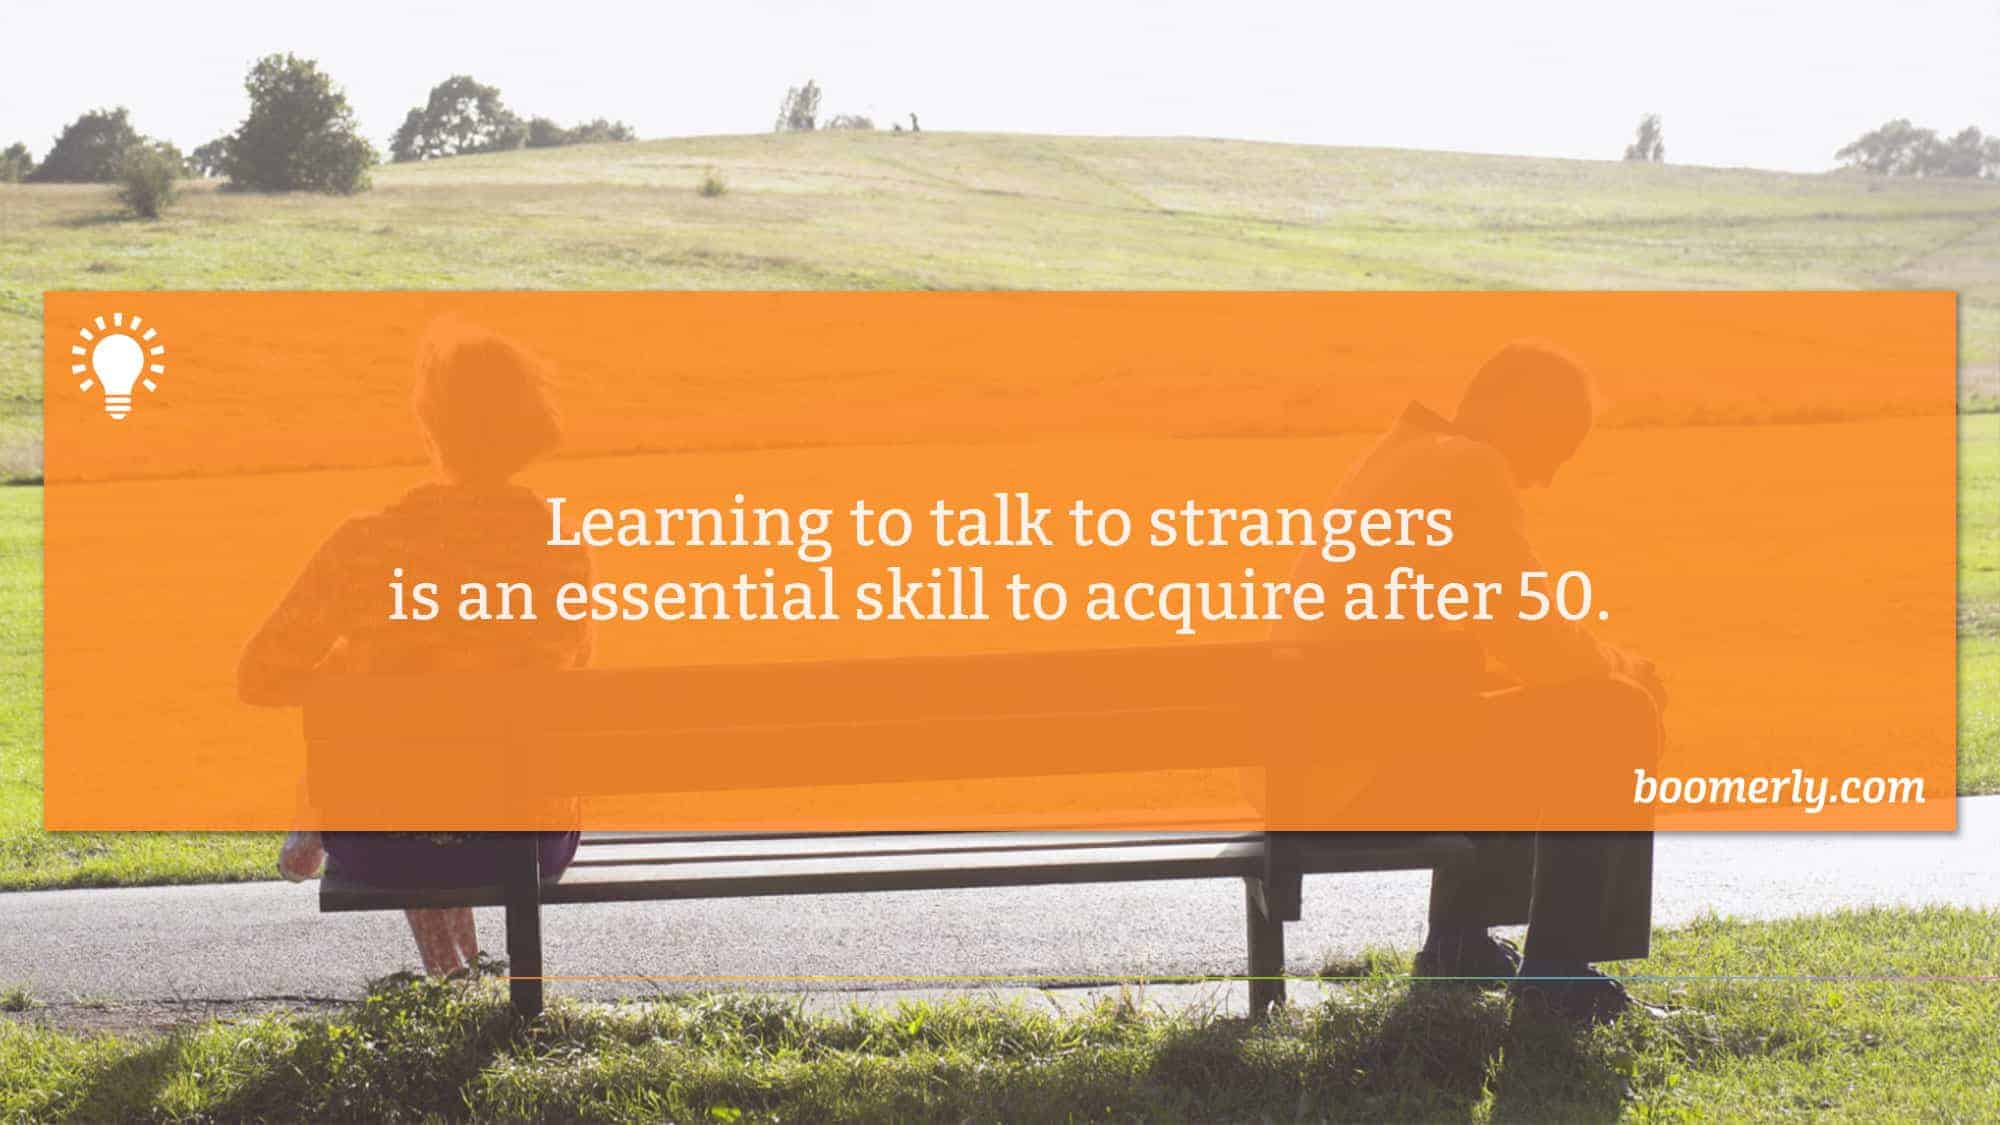 Learning to talk to strangers is an essential skill to acquire after 50.